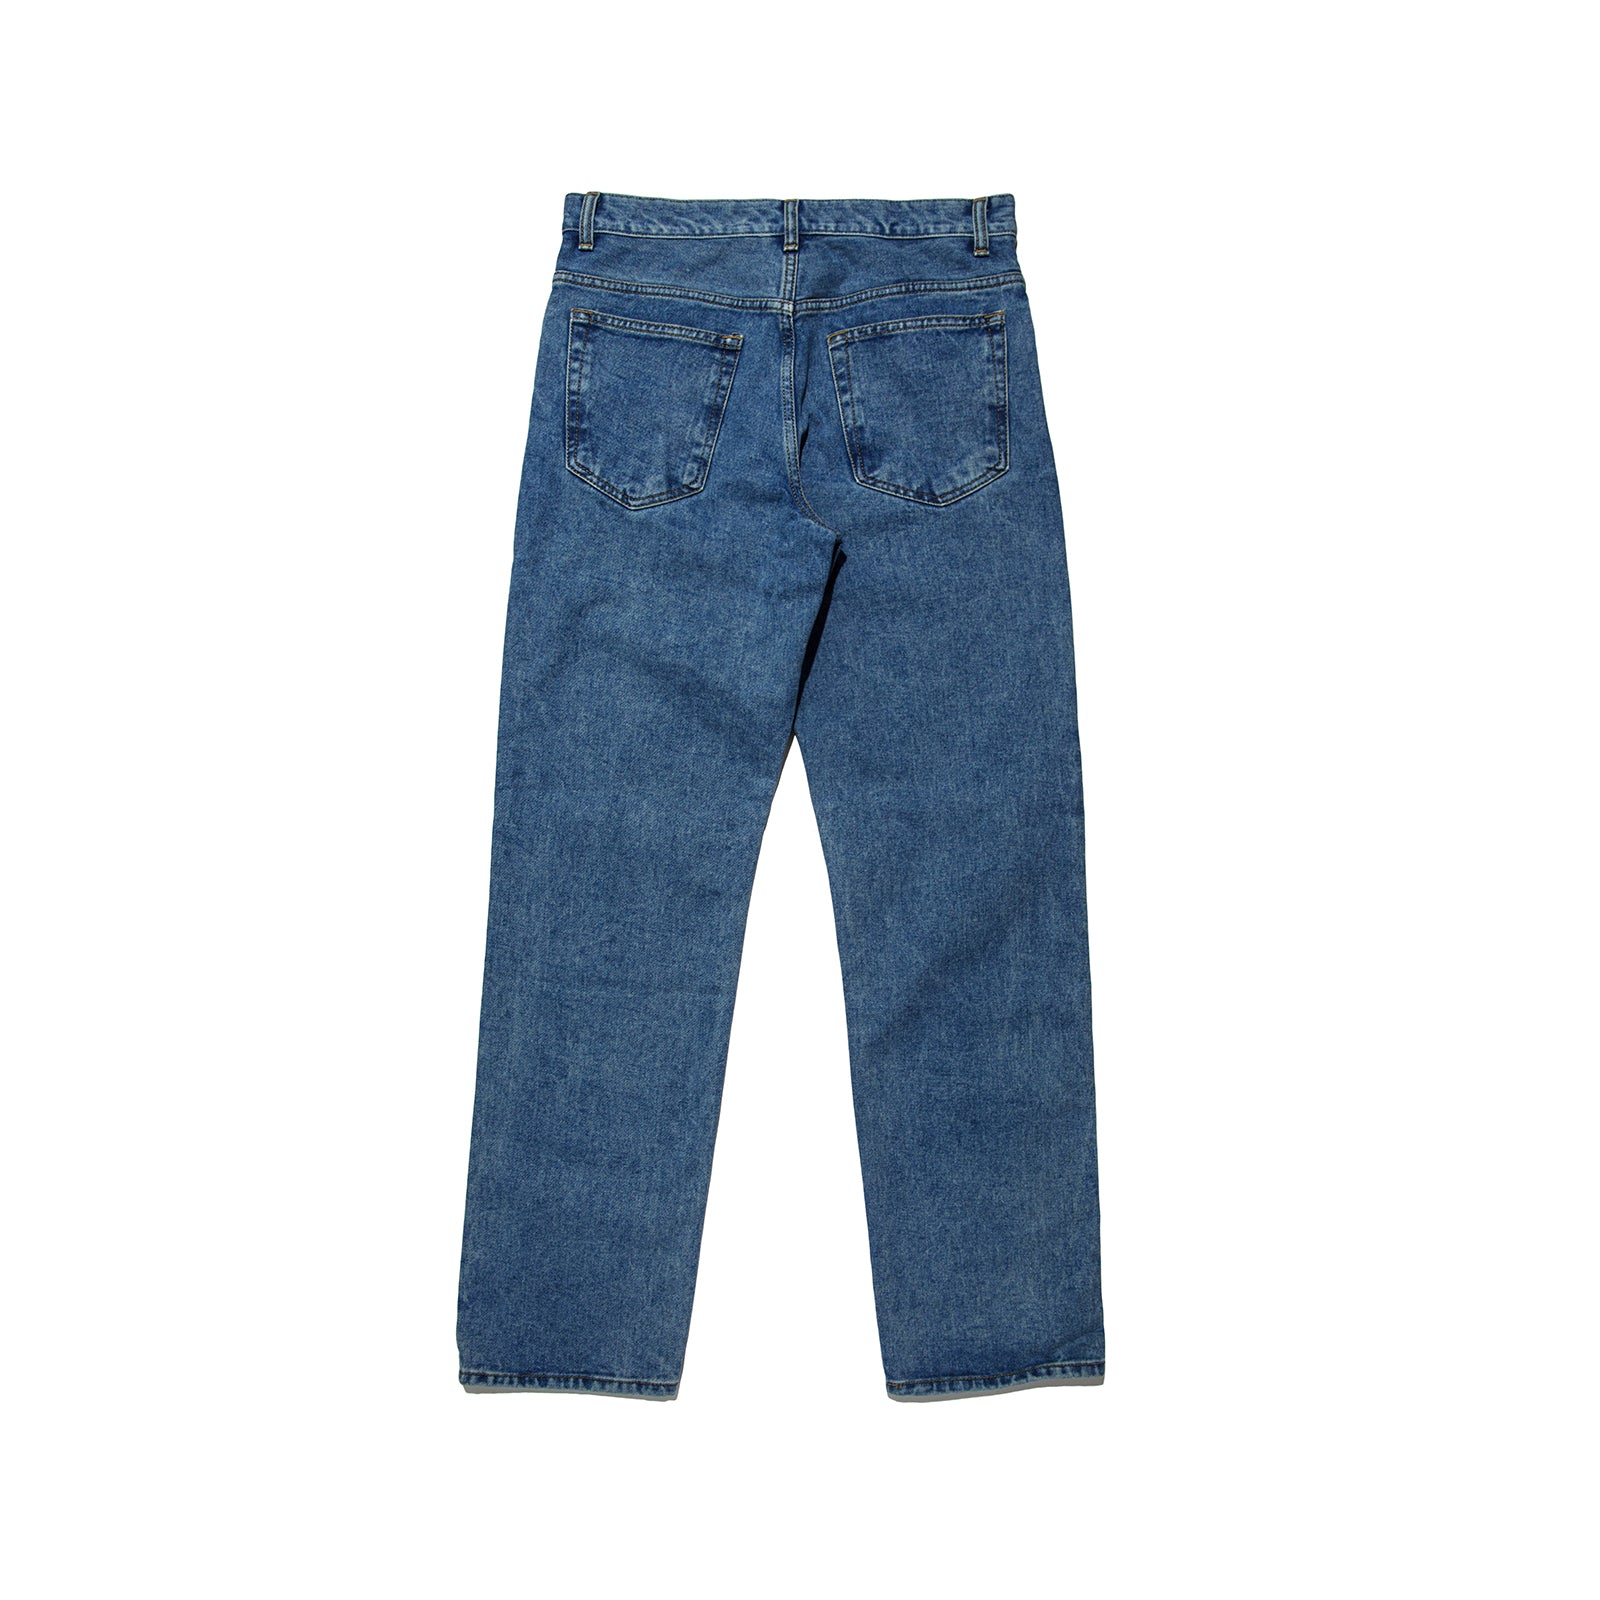 WKND DENIM PANTS (DENIM)